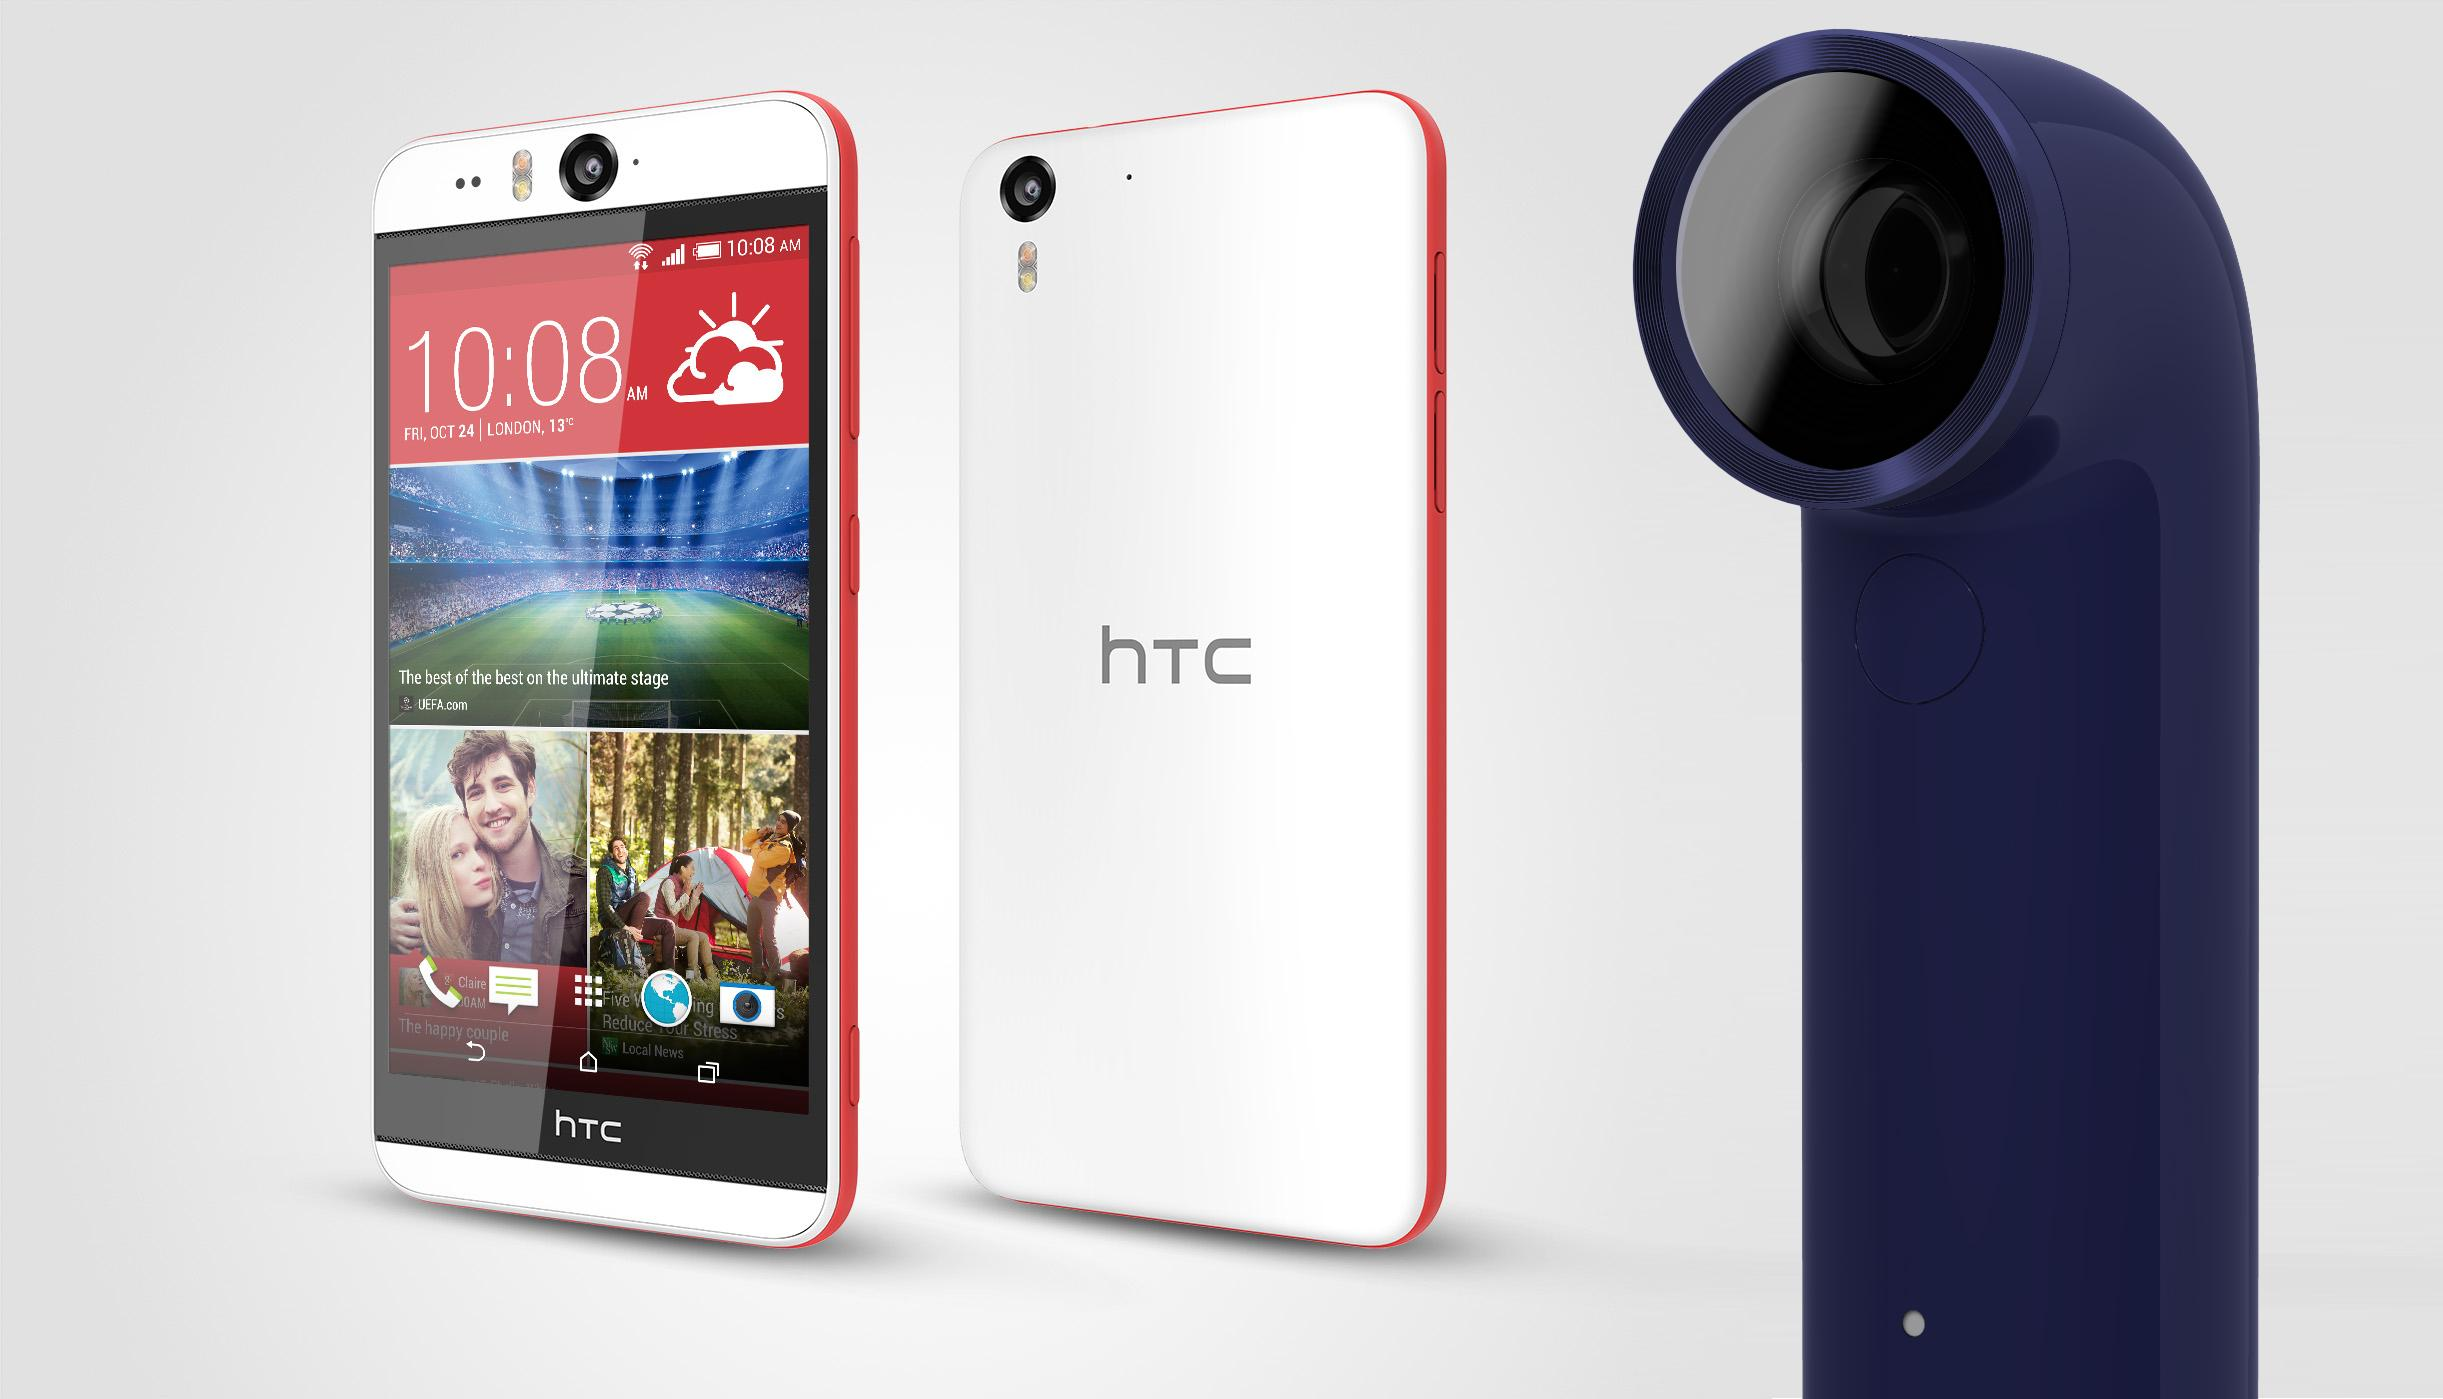 HTC Desire Eye Selfie Phone And HTC RE Camera Overview & Expert Analysis